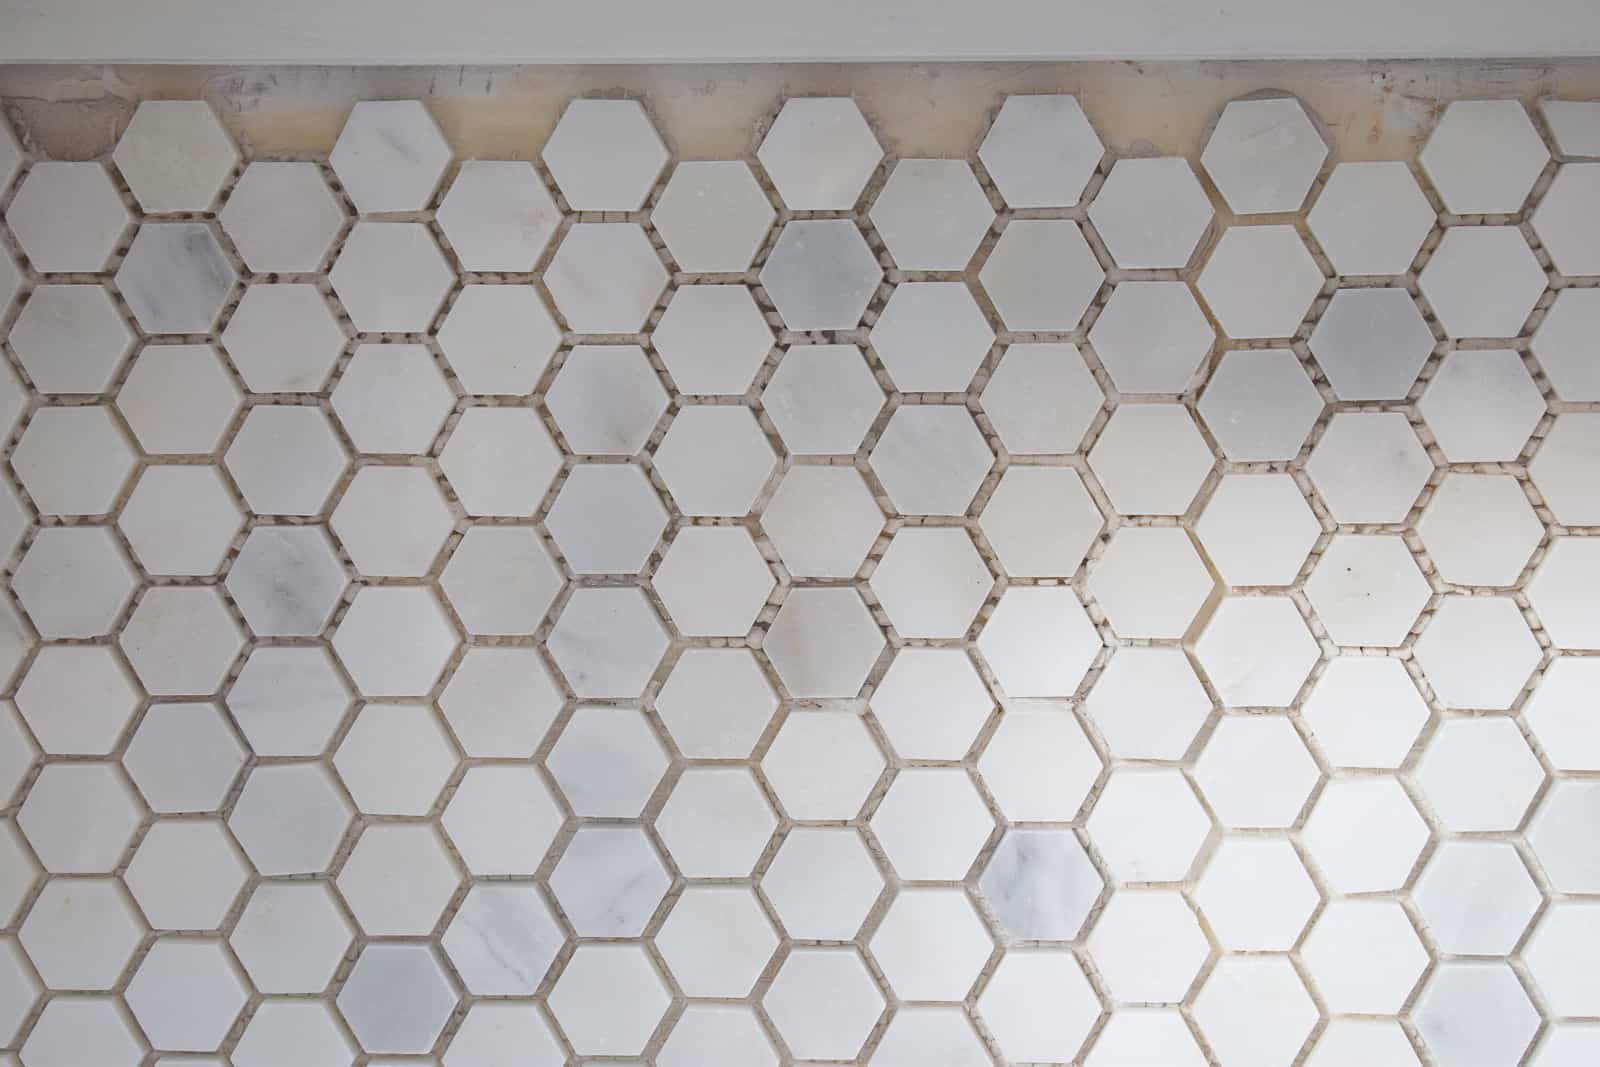 detail of hex tile edges